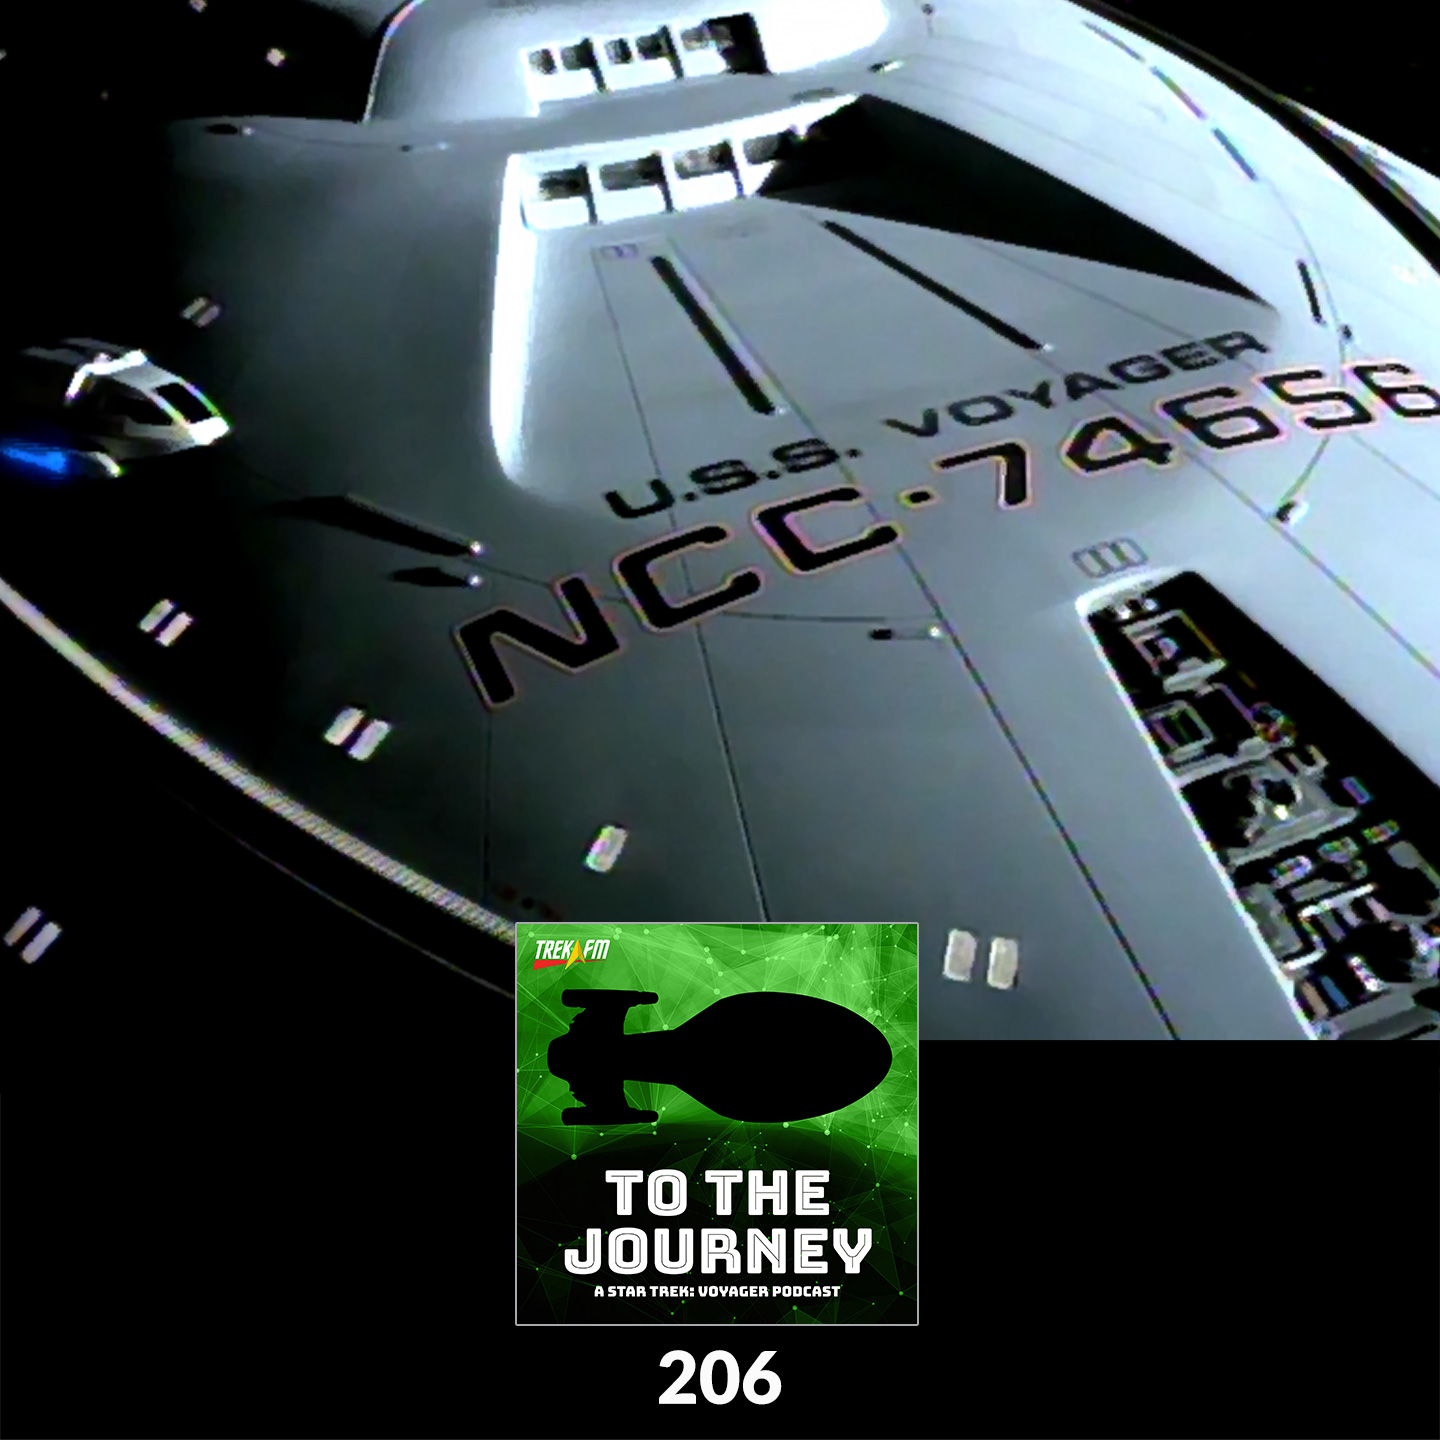 To The Journey 206: U.S.S. Snookums - Voyager: The Ship